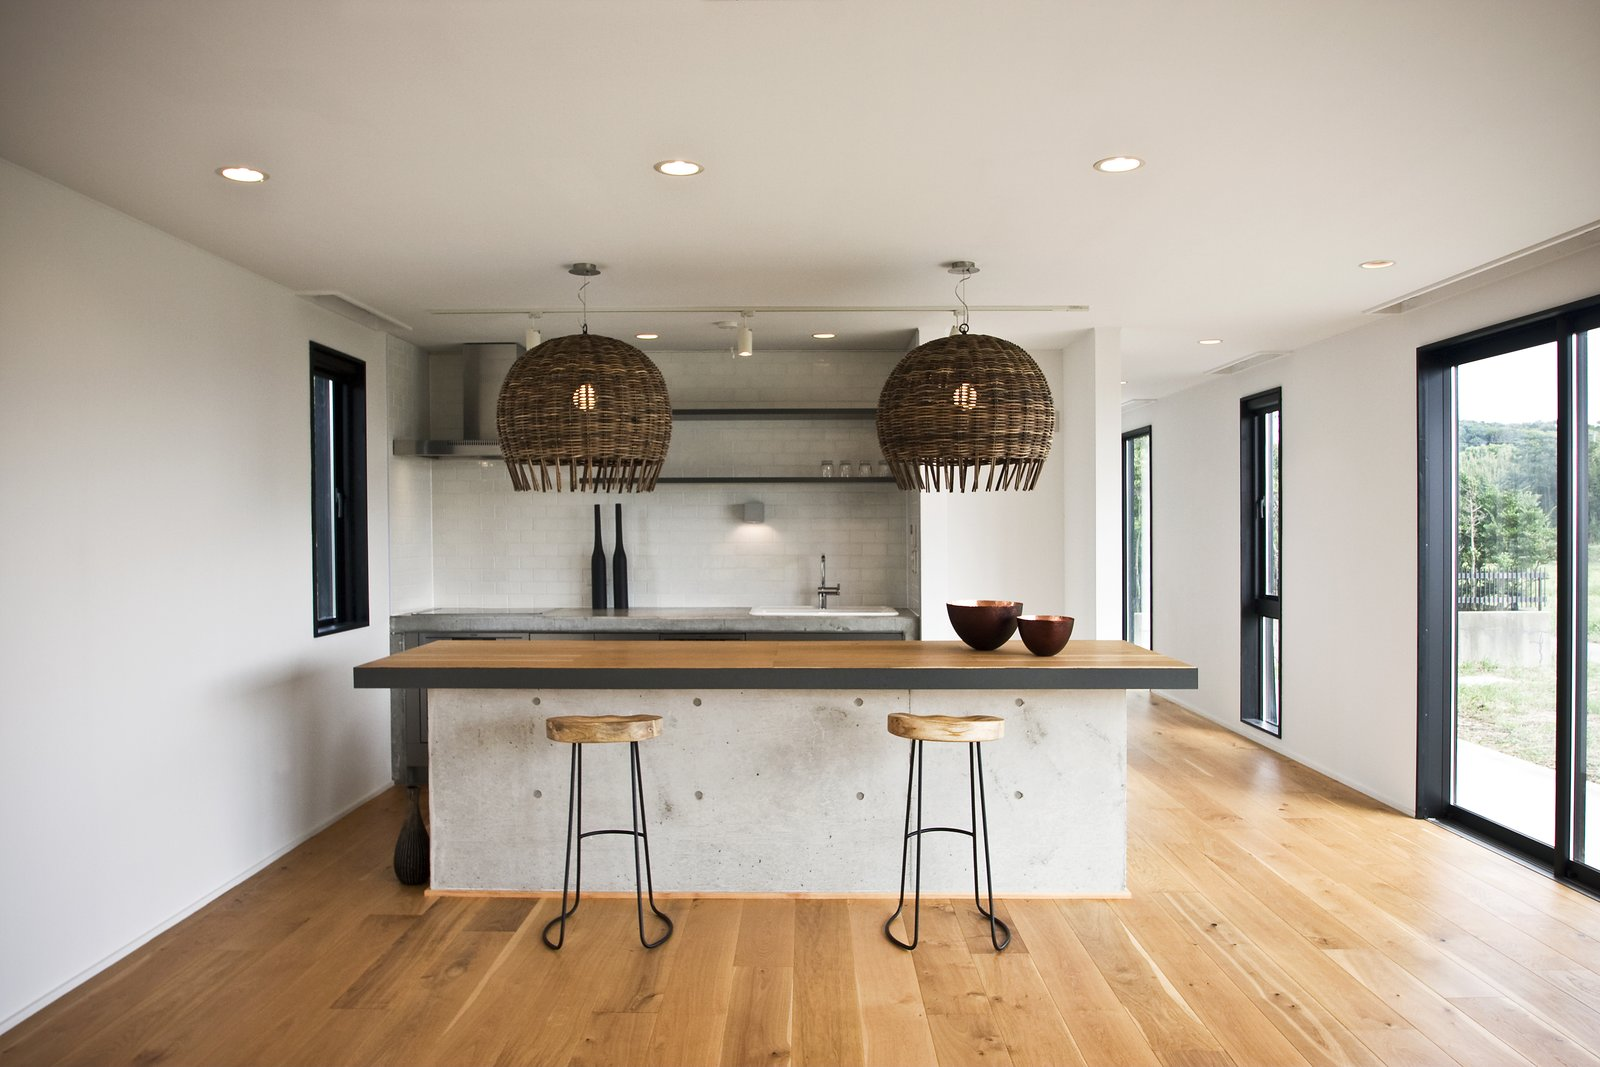 Kitchen, Pendant Lighting, Medium Hardwood Floor, and Wood Counter The kitchen island is made of concrete with an oak top and black steel edging—an industrial element within a project that celebrates nature.  Photo 6 of 7 in This Minimal Japanese Getaway Was Built for Surfing